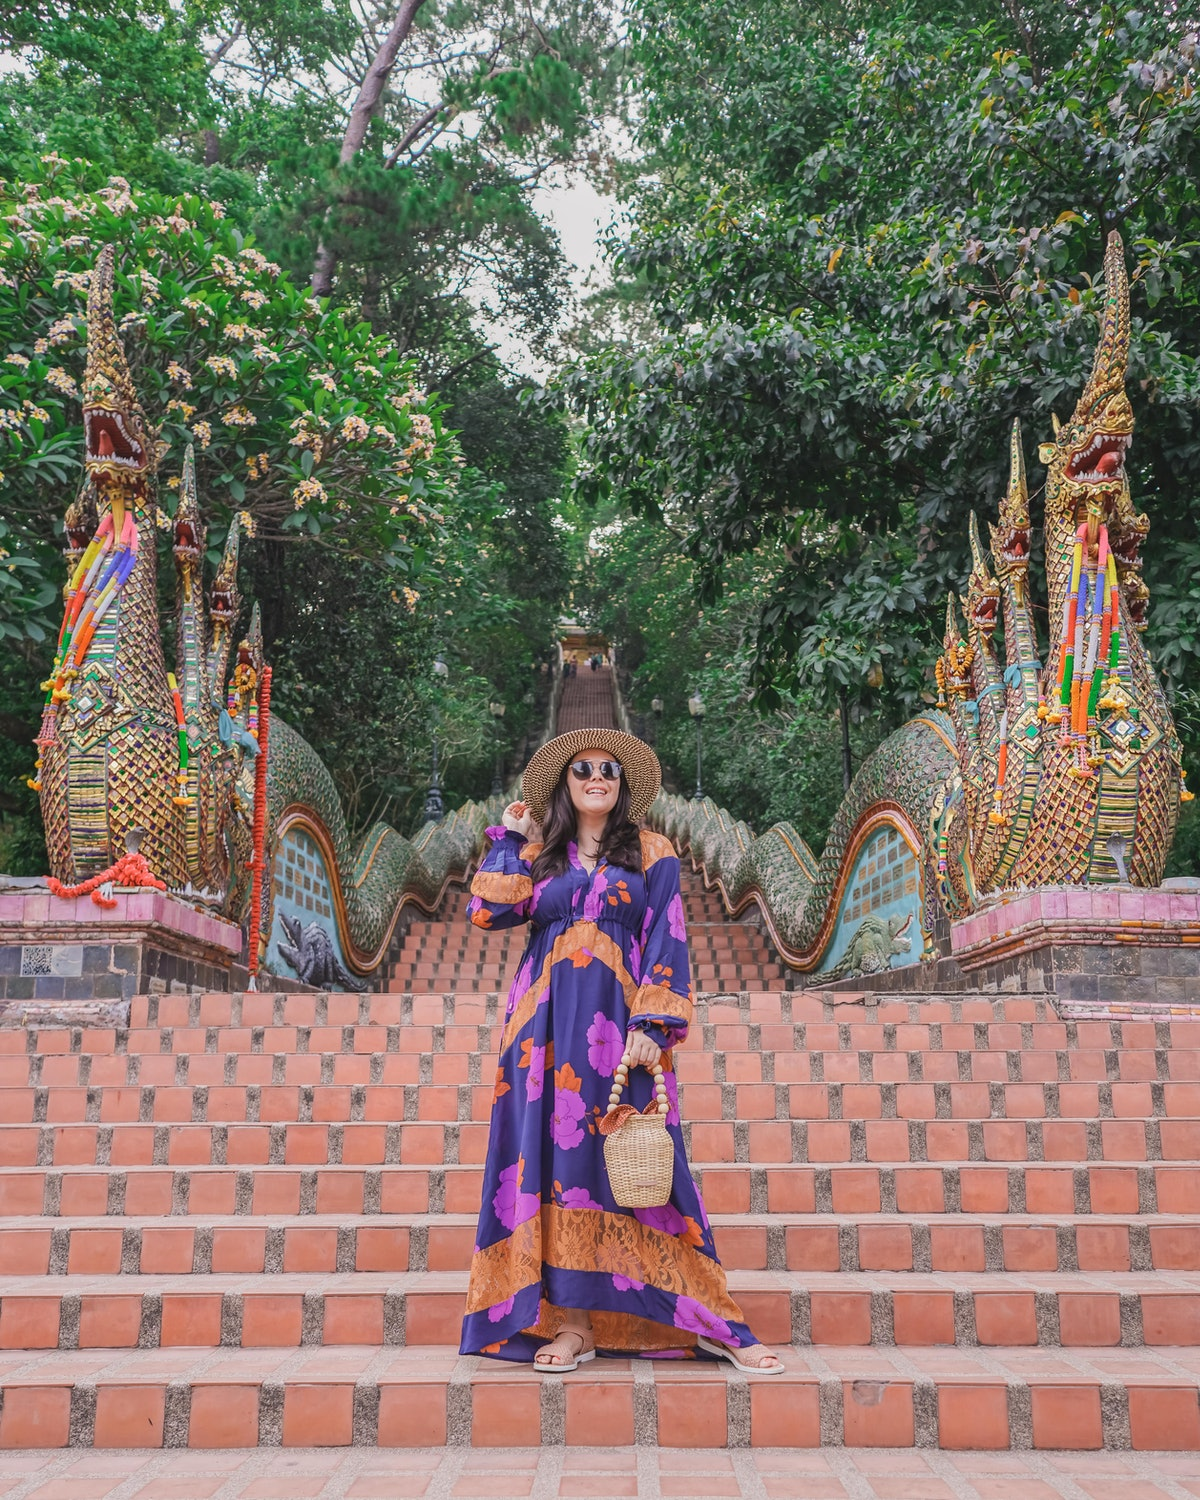 A woman in a colorful maxi dress and big sun hat poses on temple stairs in Thailand.